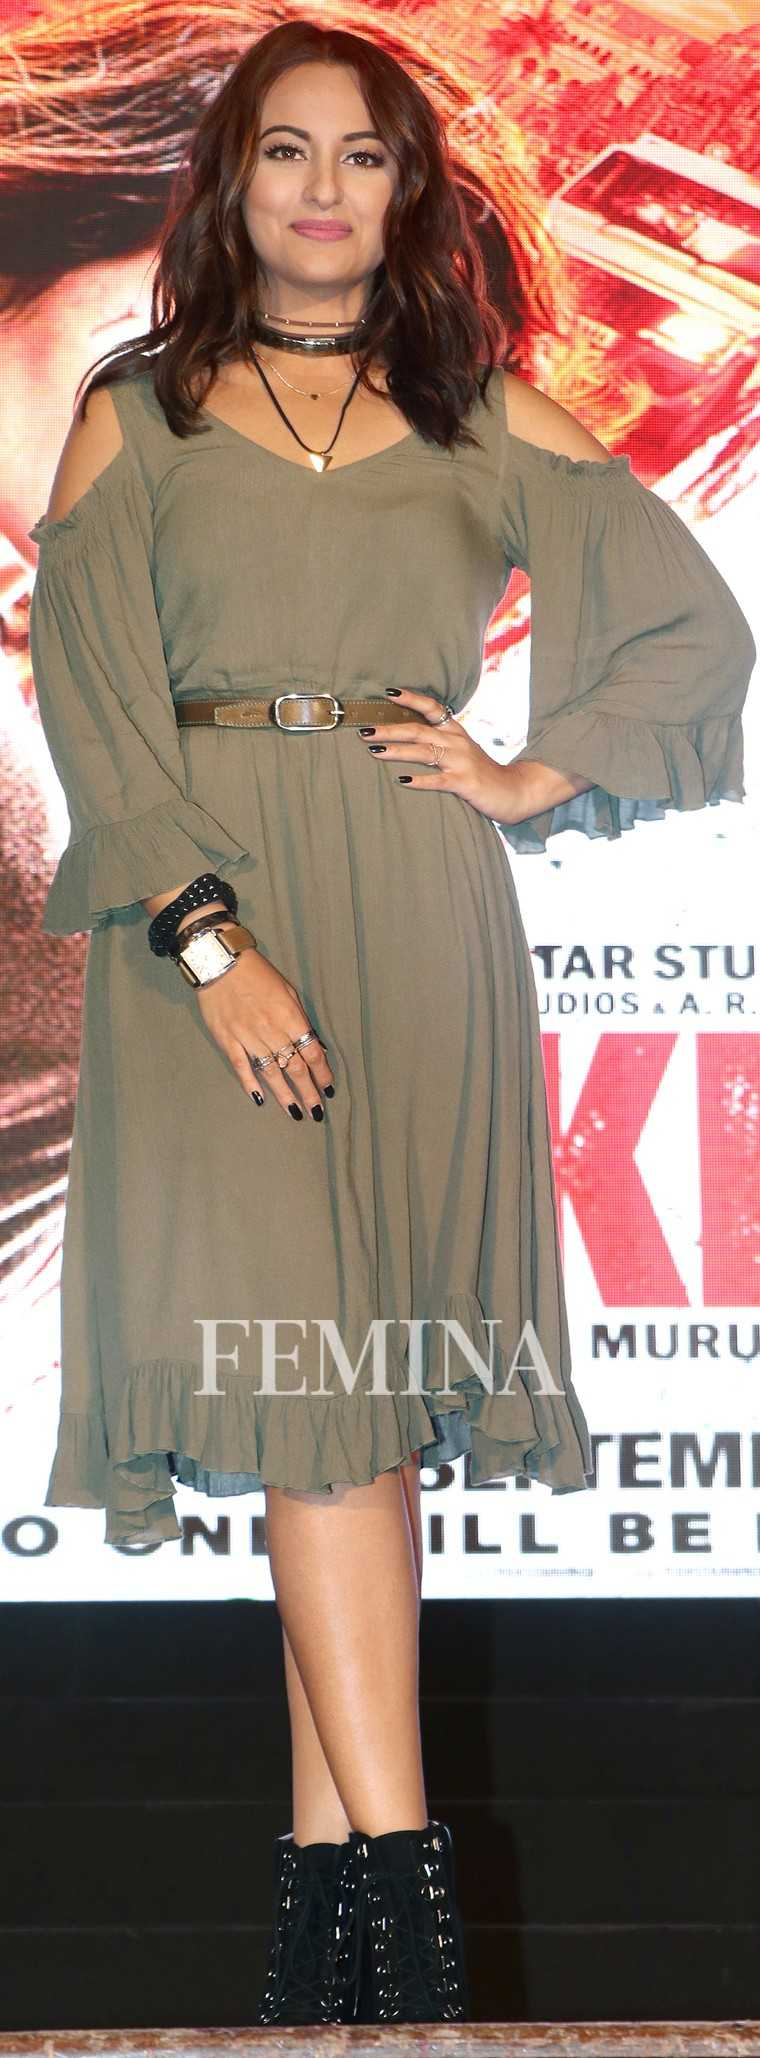 SONAKSHI SINHA While the khaki colour of her Koovs dress says utilitarian says, the ruffled hem, lantern sleeves and addition of a skinny choker are more appropriate for brunch rather than safari-ready.